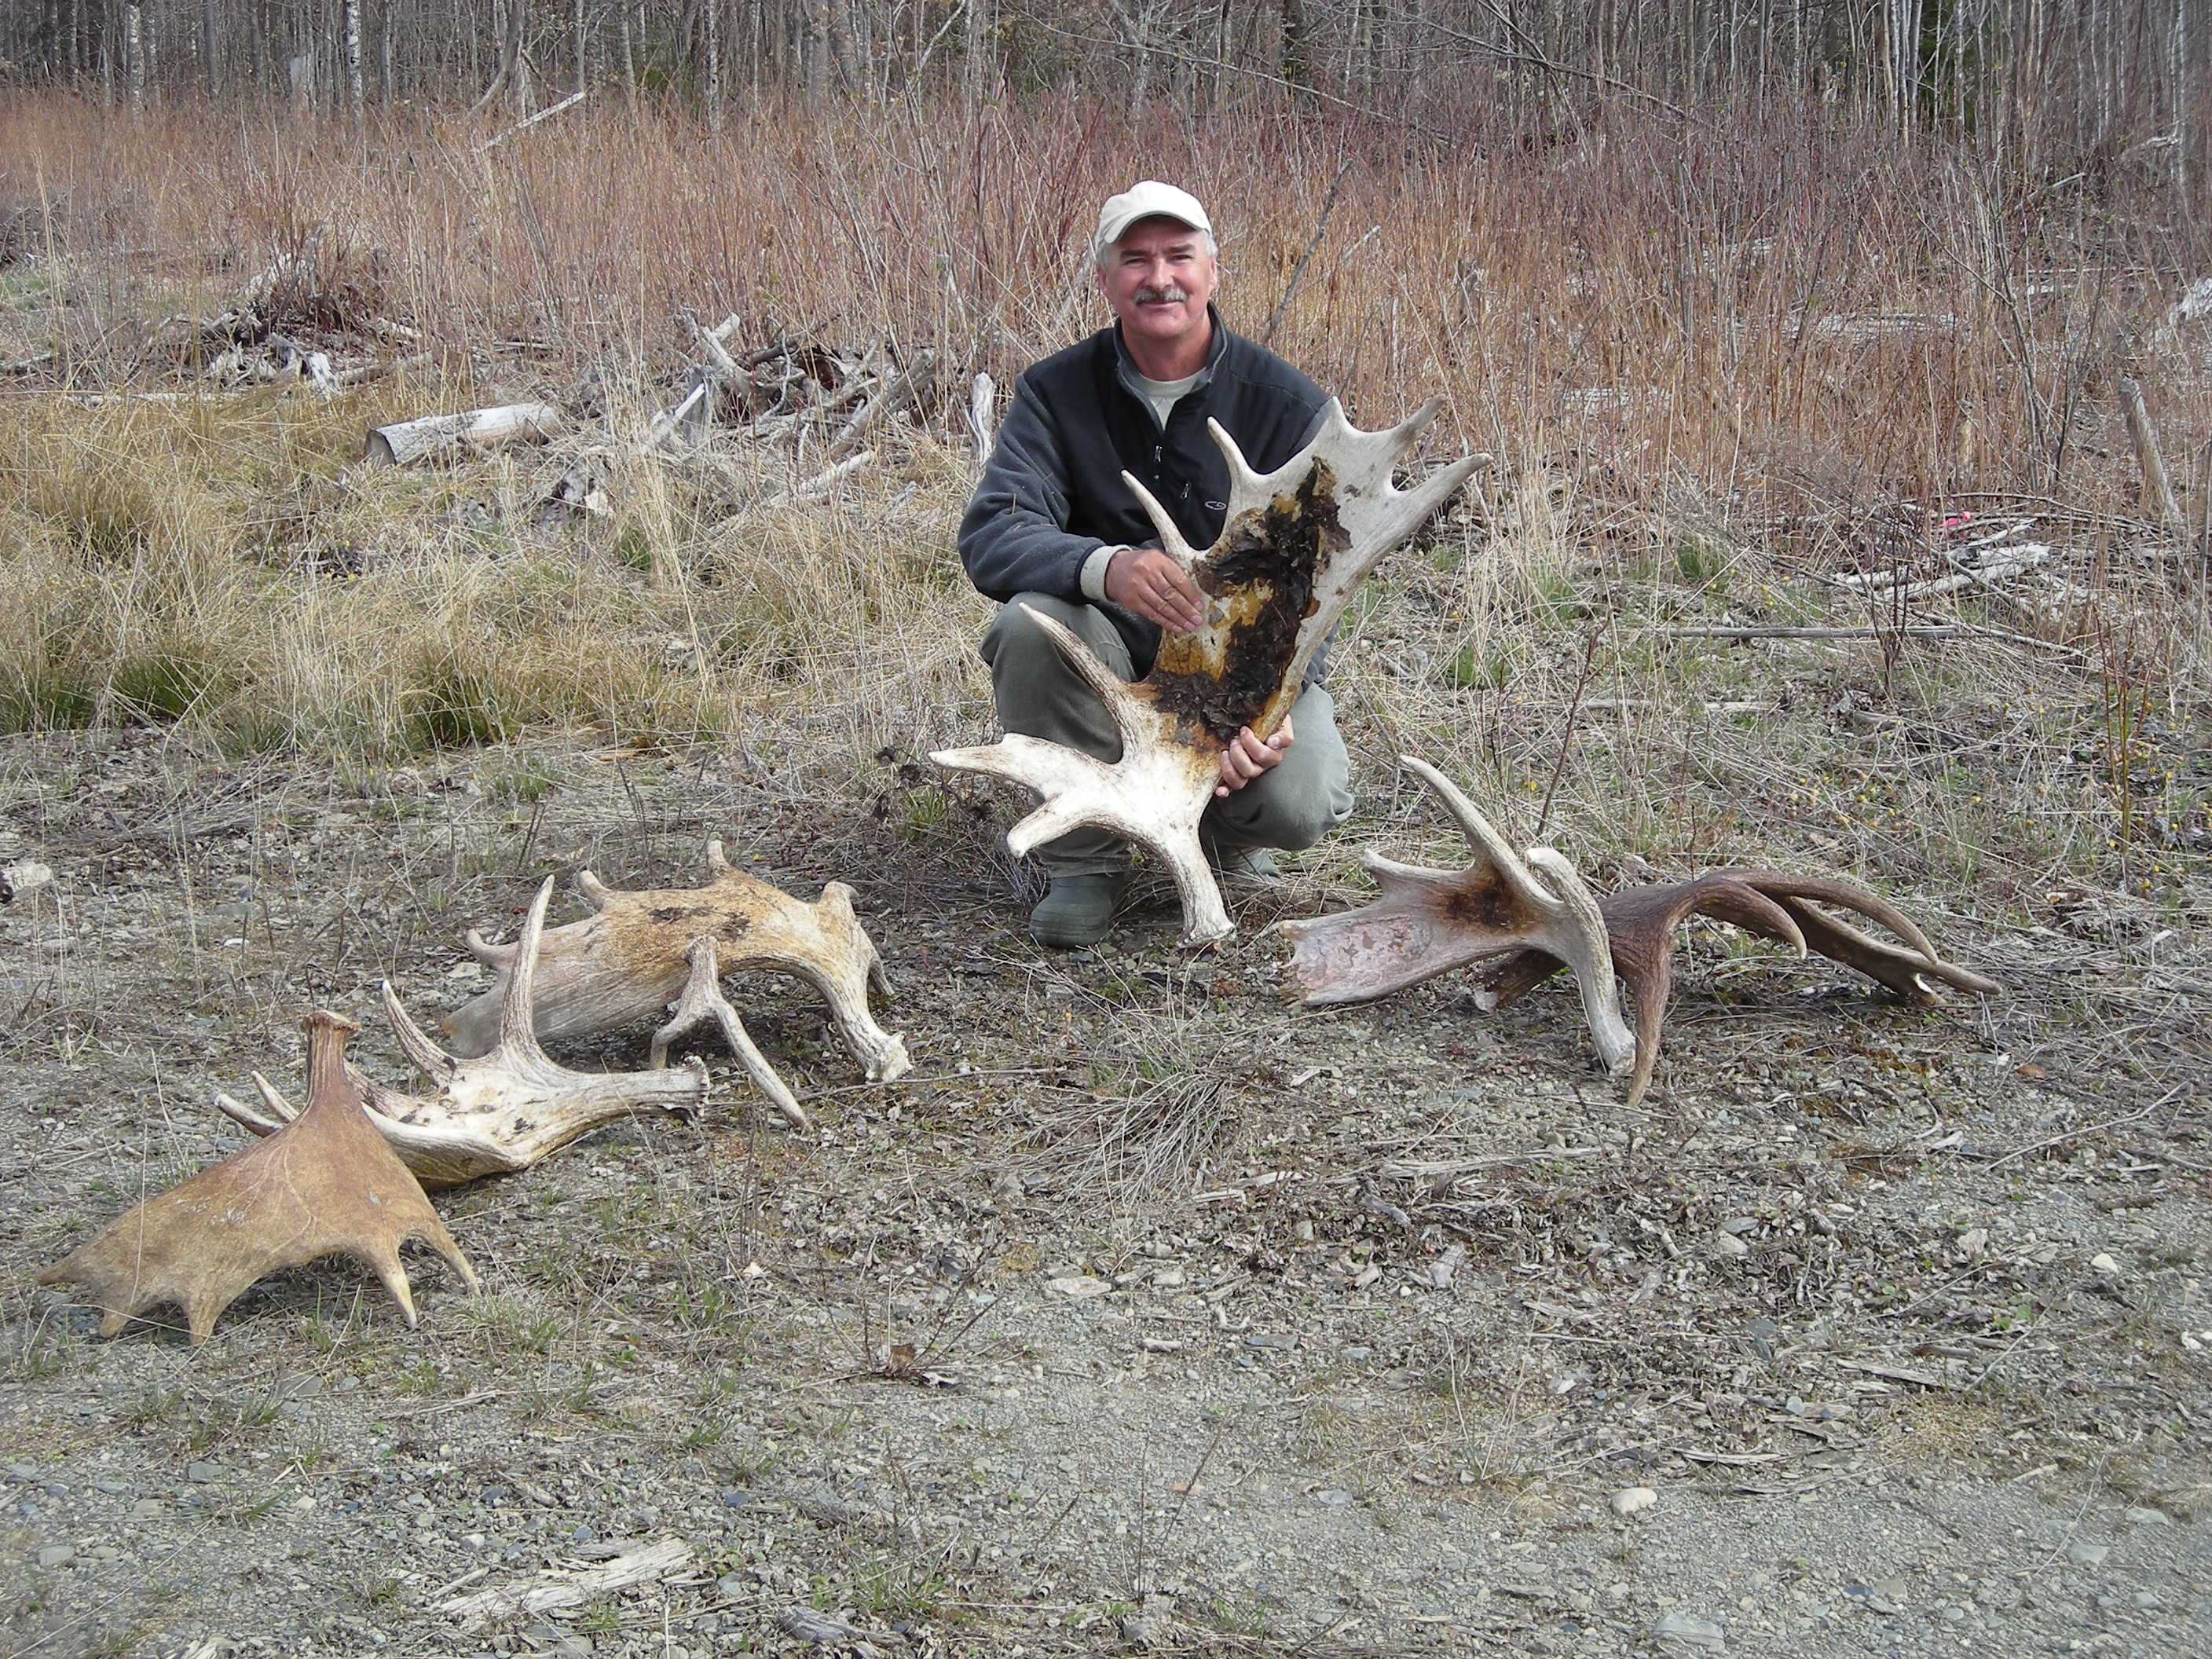 Maine Moose Antler Hunting Early Spring Allagash Guide